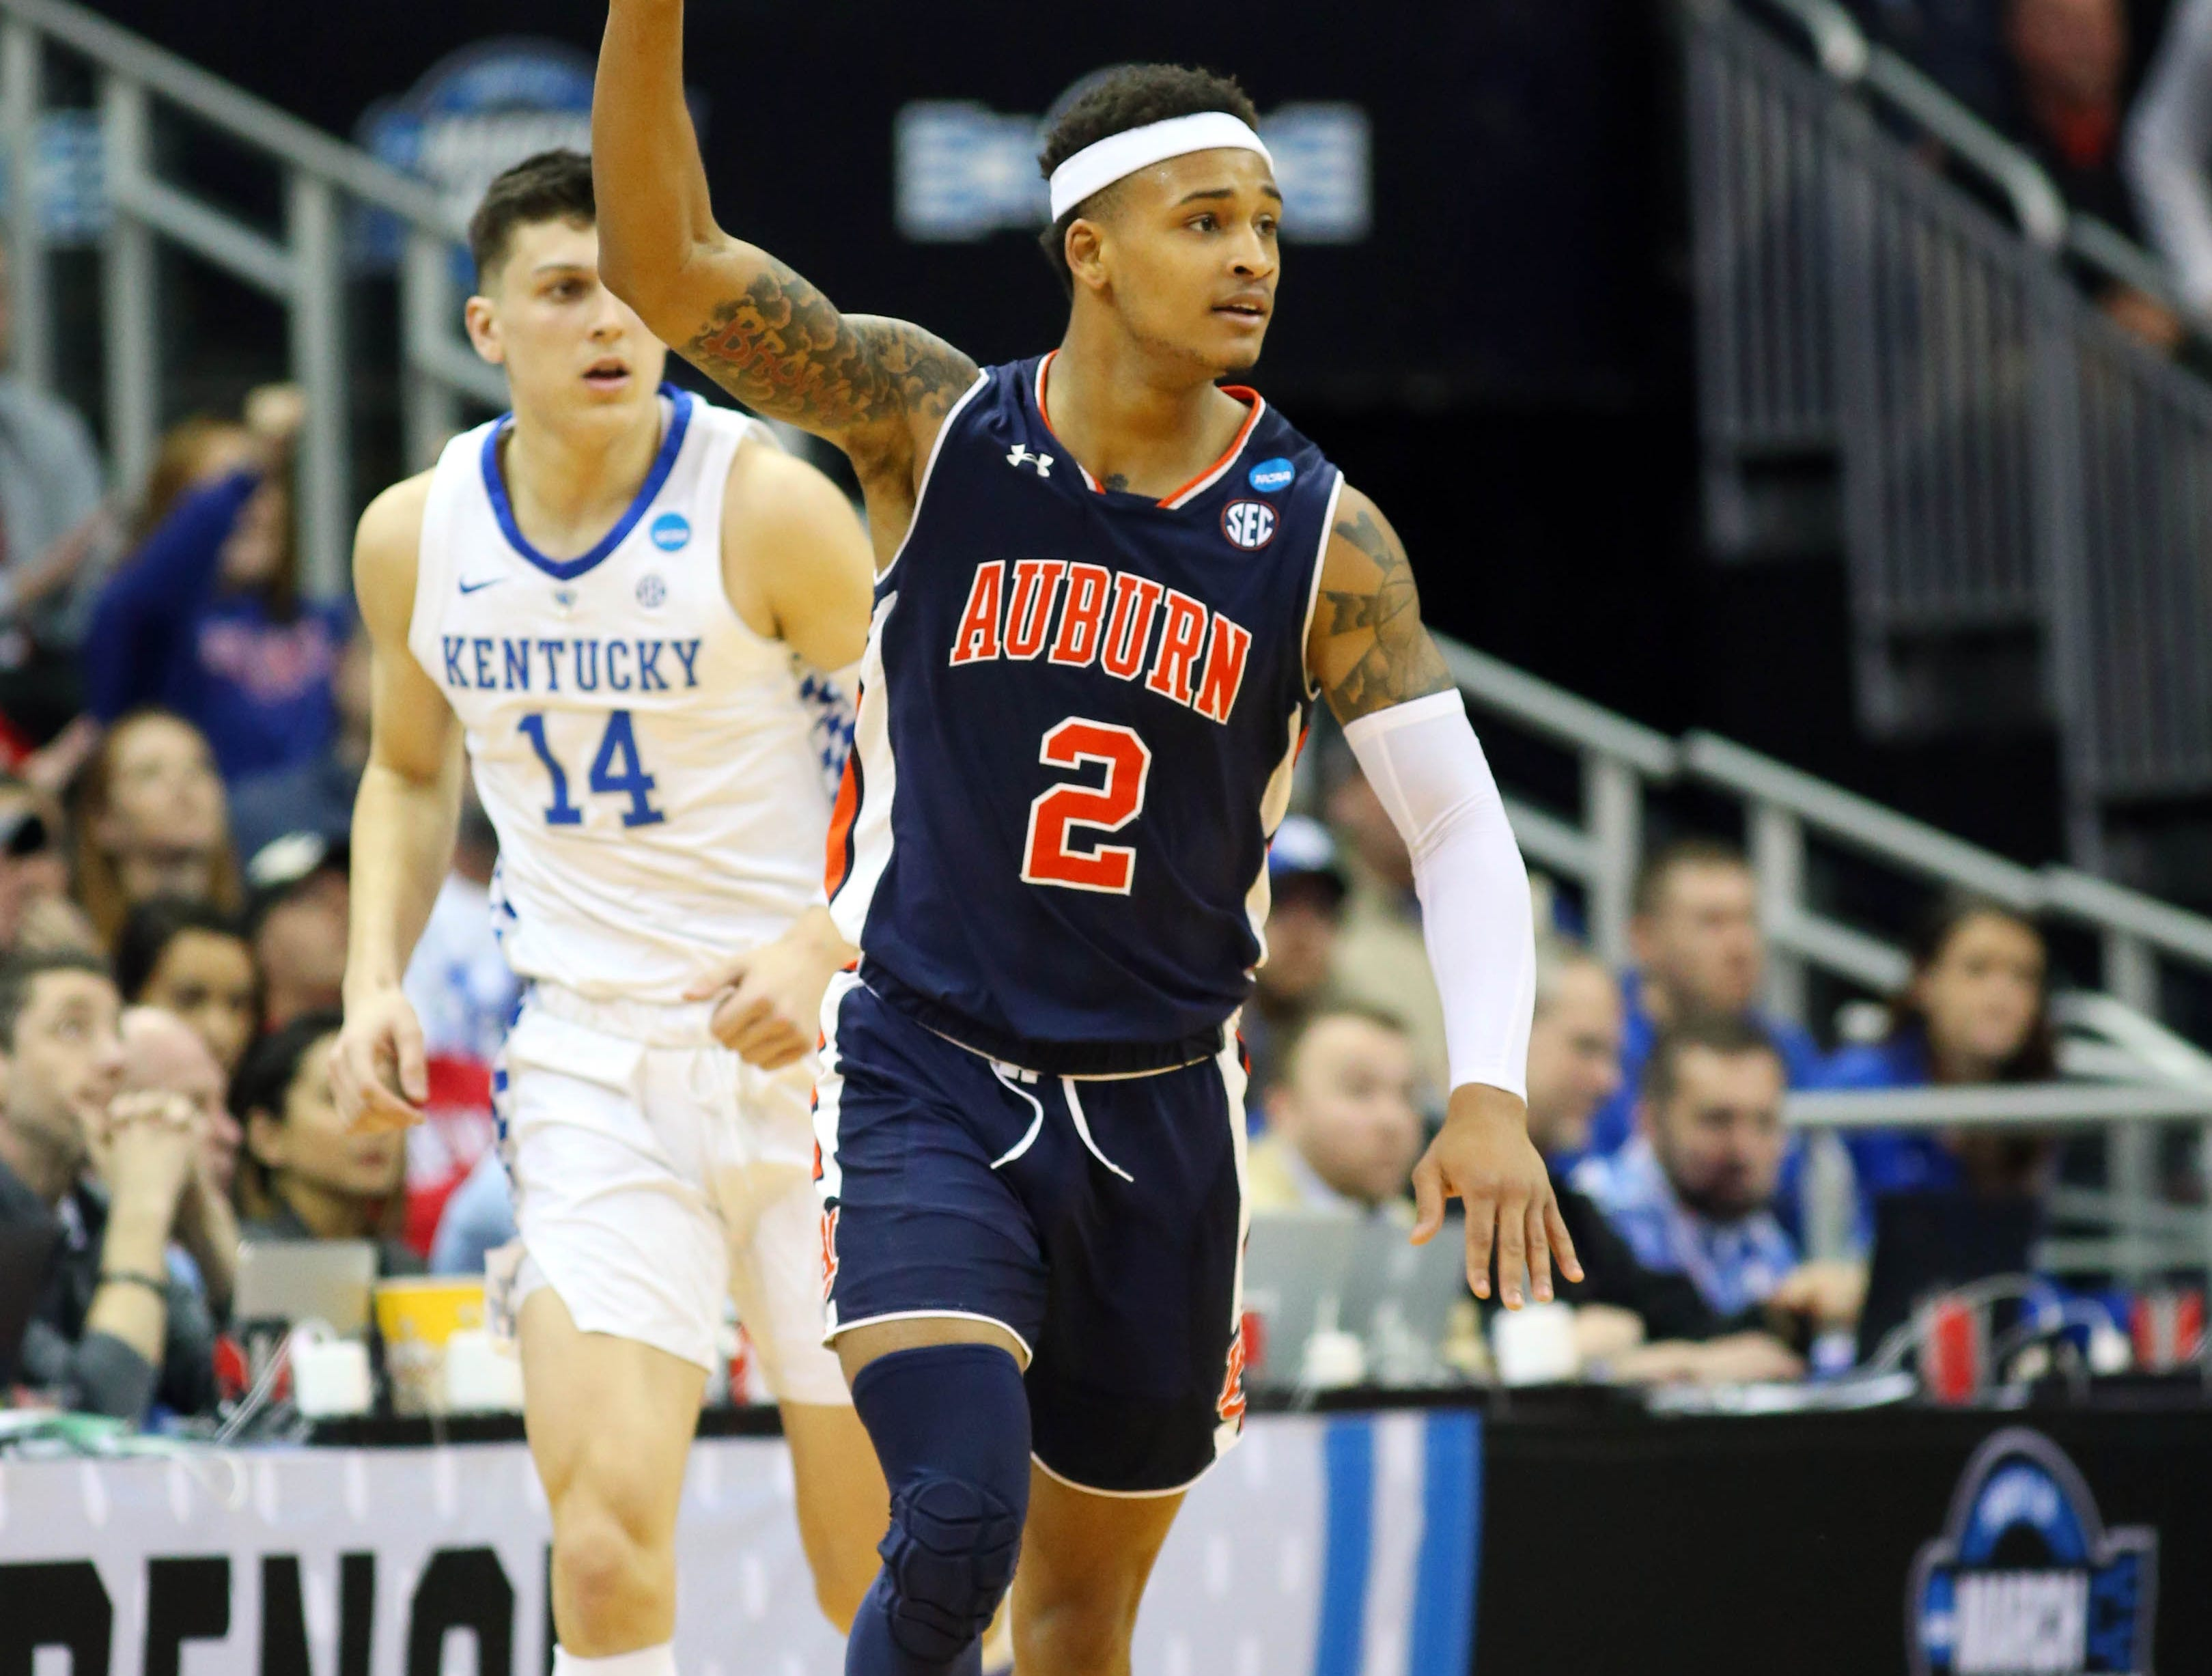 Mar 31, 2019; Kansas City, MO, United States; Auburn Tigers guard Bryce Brown (2) celebrates a three point basket against the Kentucky Wildcats during the second half in the championship game of the midwest regional of the 2019 NCAA Tournament at Sprint Center. Mandatory Credit: Jay Biggerstaff-USA TODAY Sports